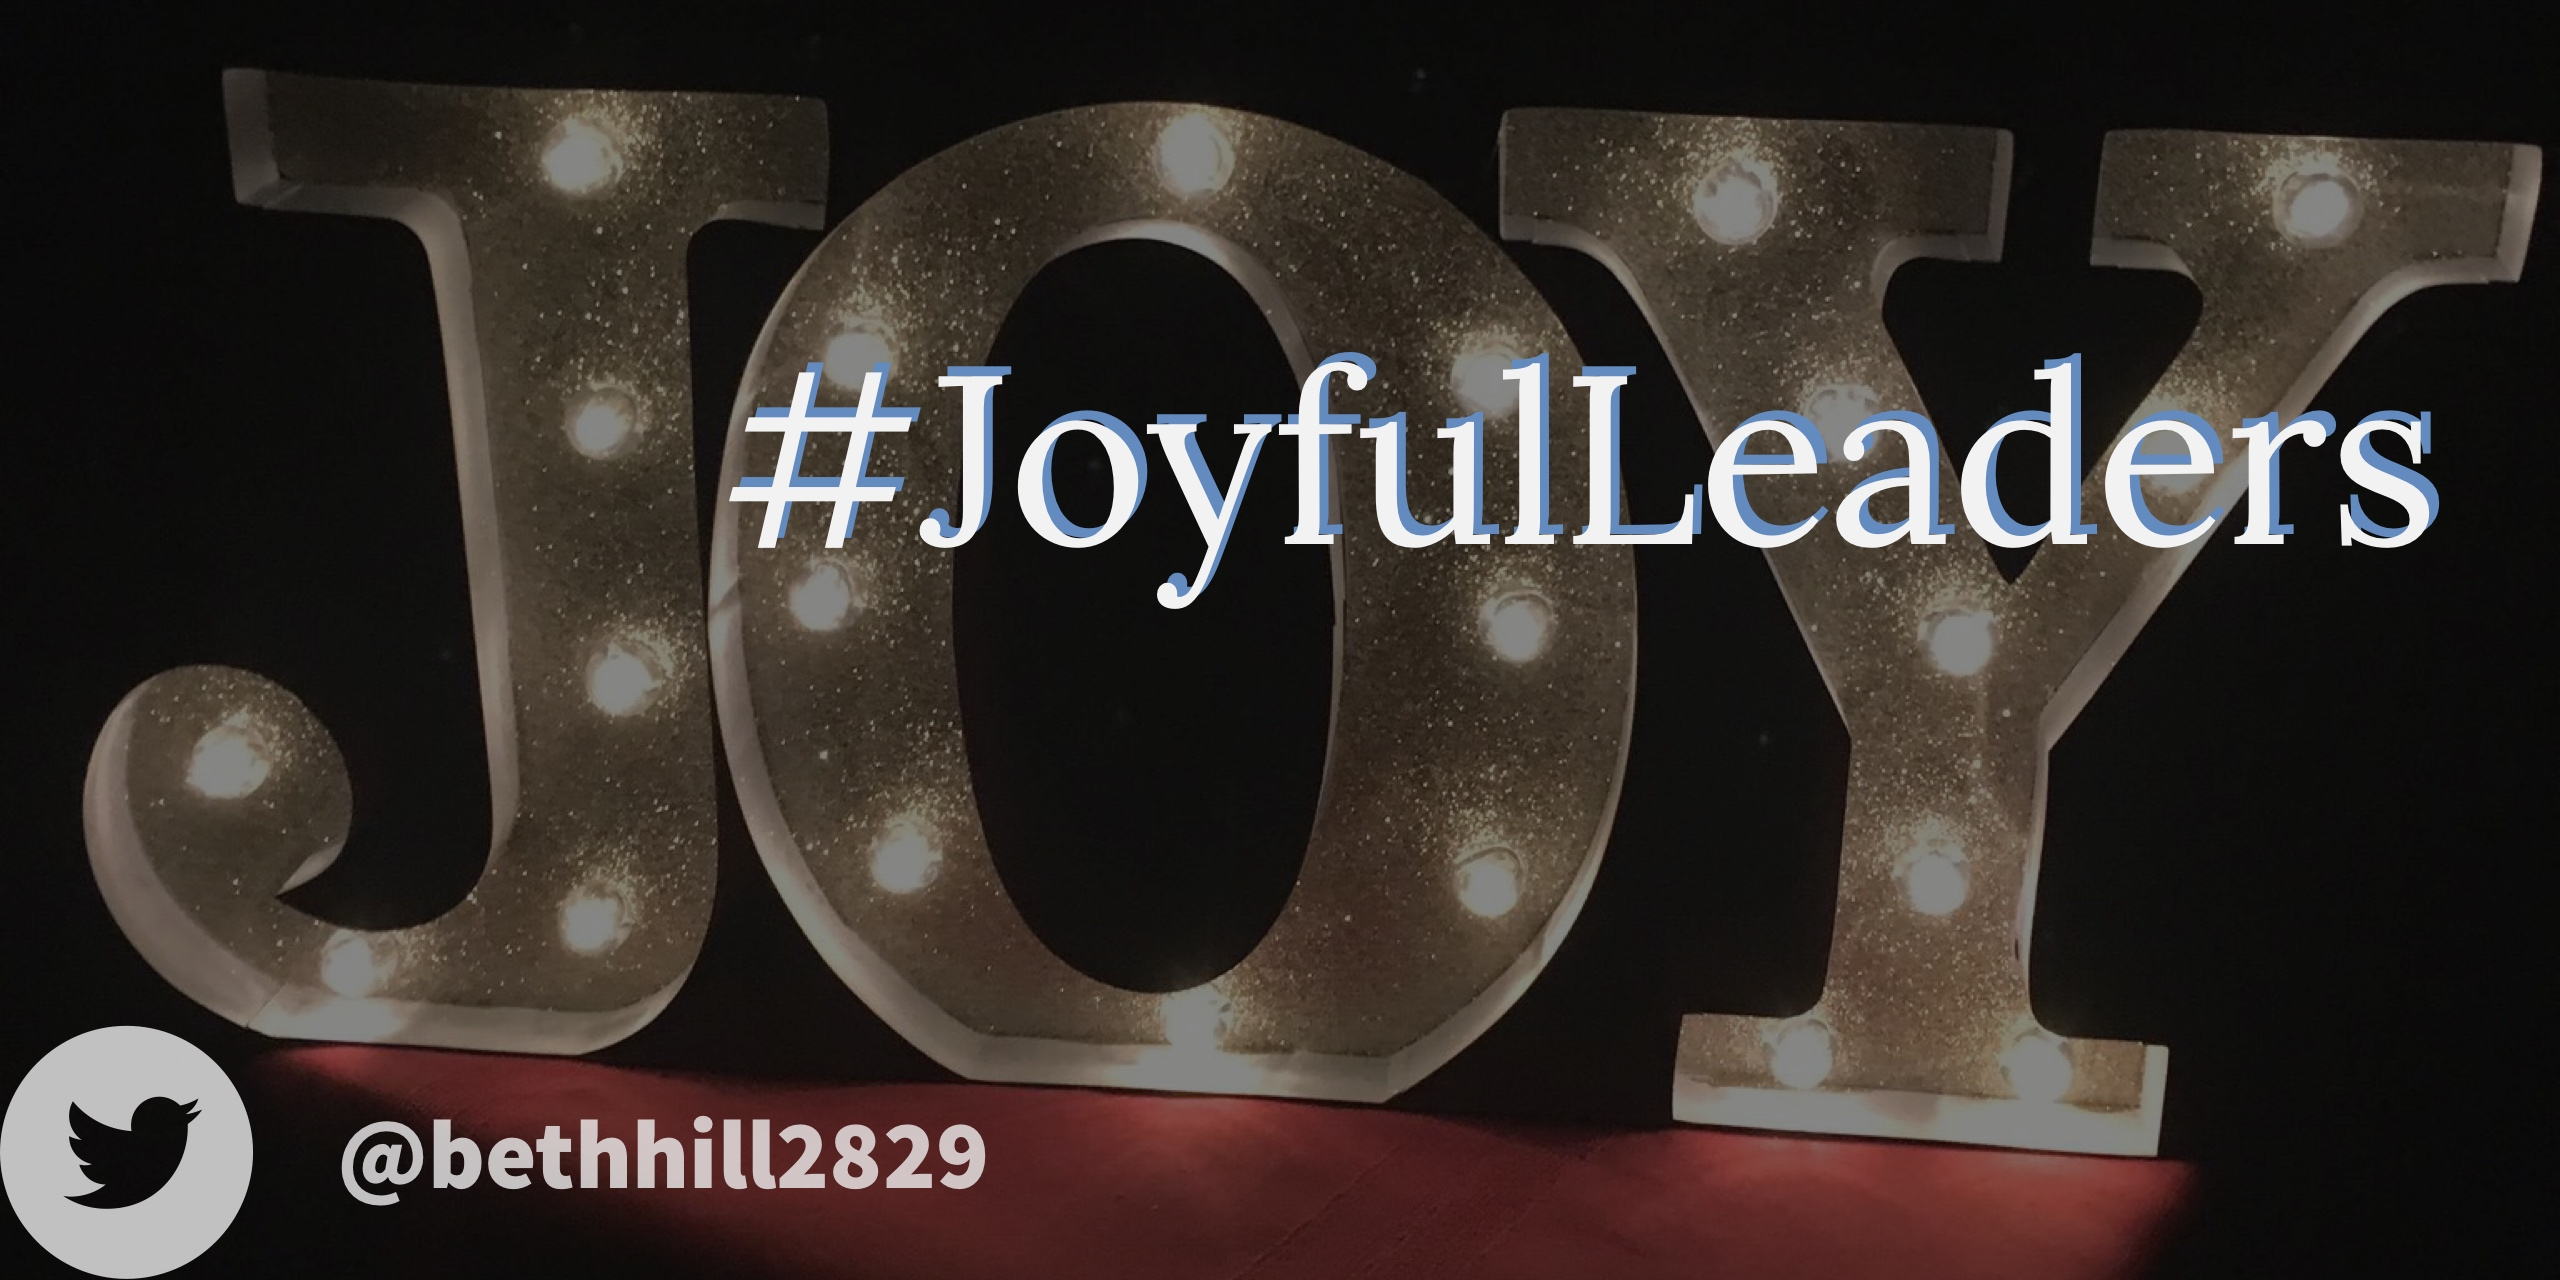 #JoyfulLeaders: A Hashtag is Born